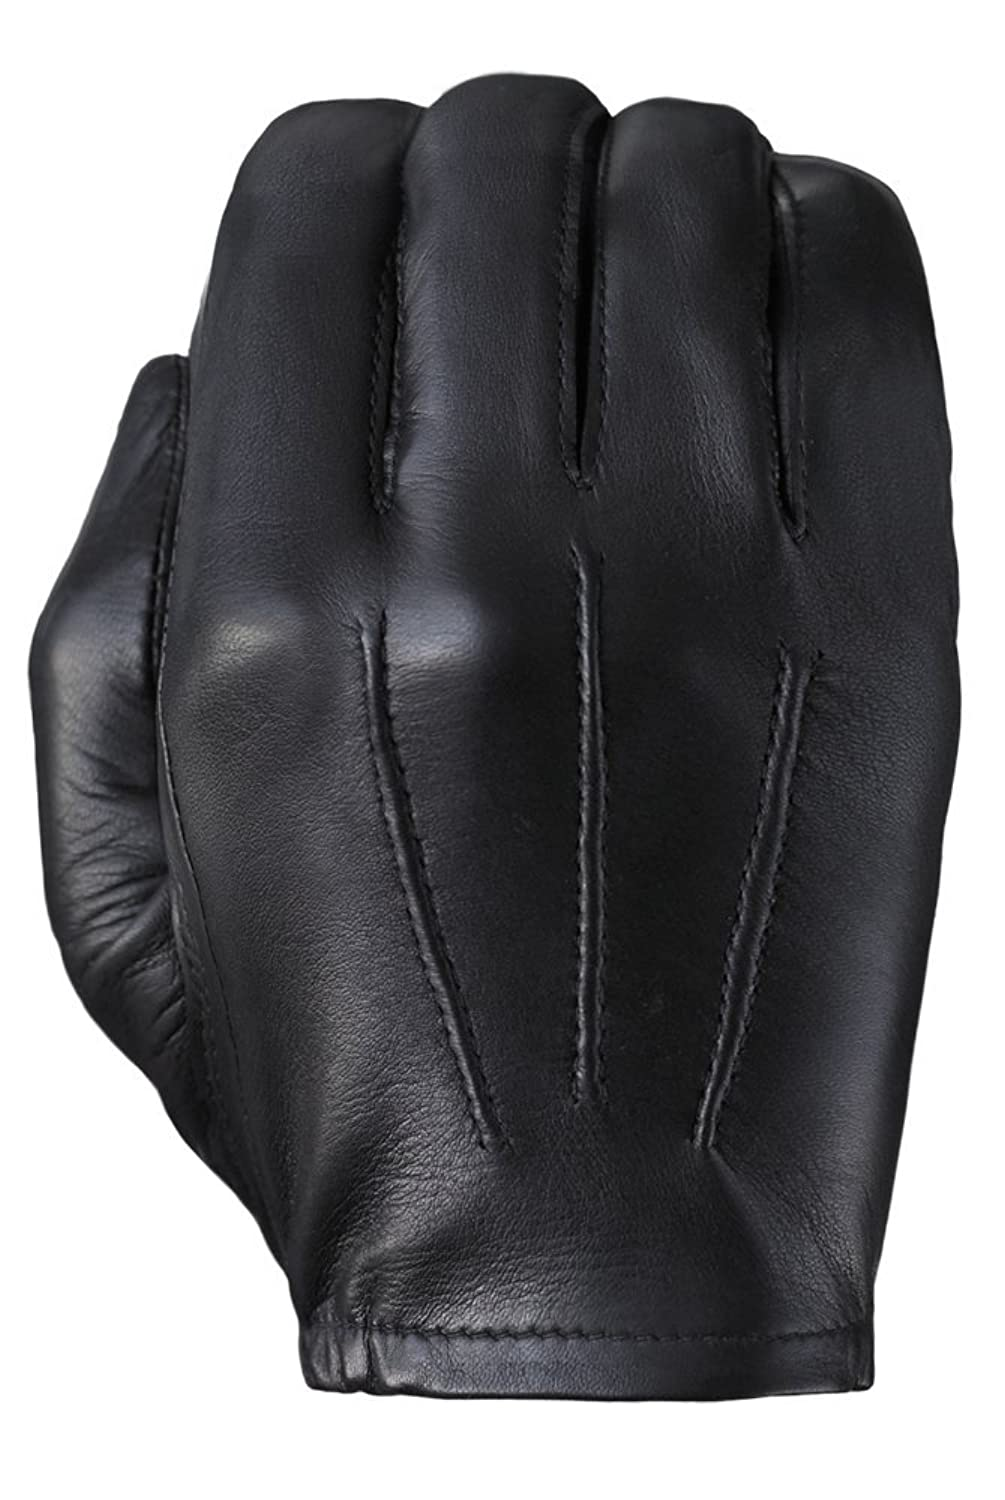 Black leather uniform gloves - Tough Gloves Men S Ultra Thin Patrol Cabretta Unlined Leather Gloves Size 6 Color Black At Amazon Men S Clothing Store Cold Weather Gloves